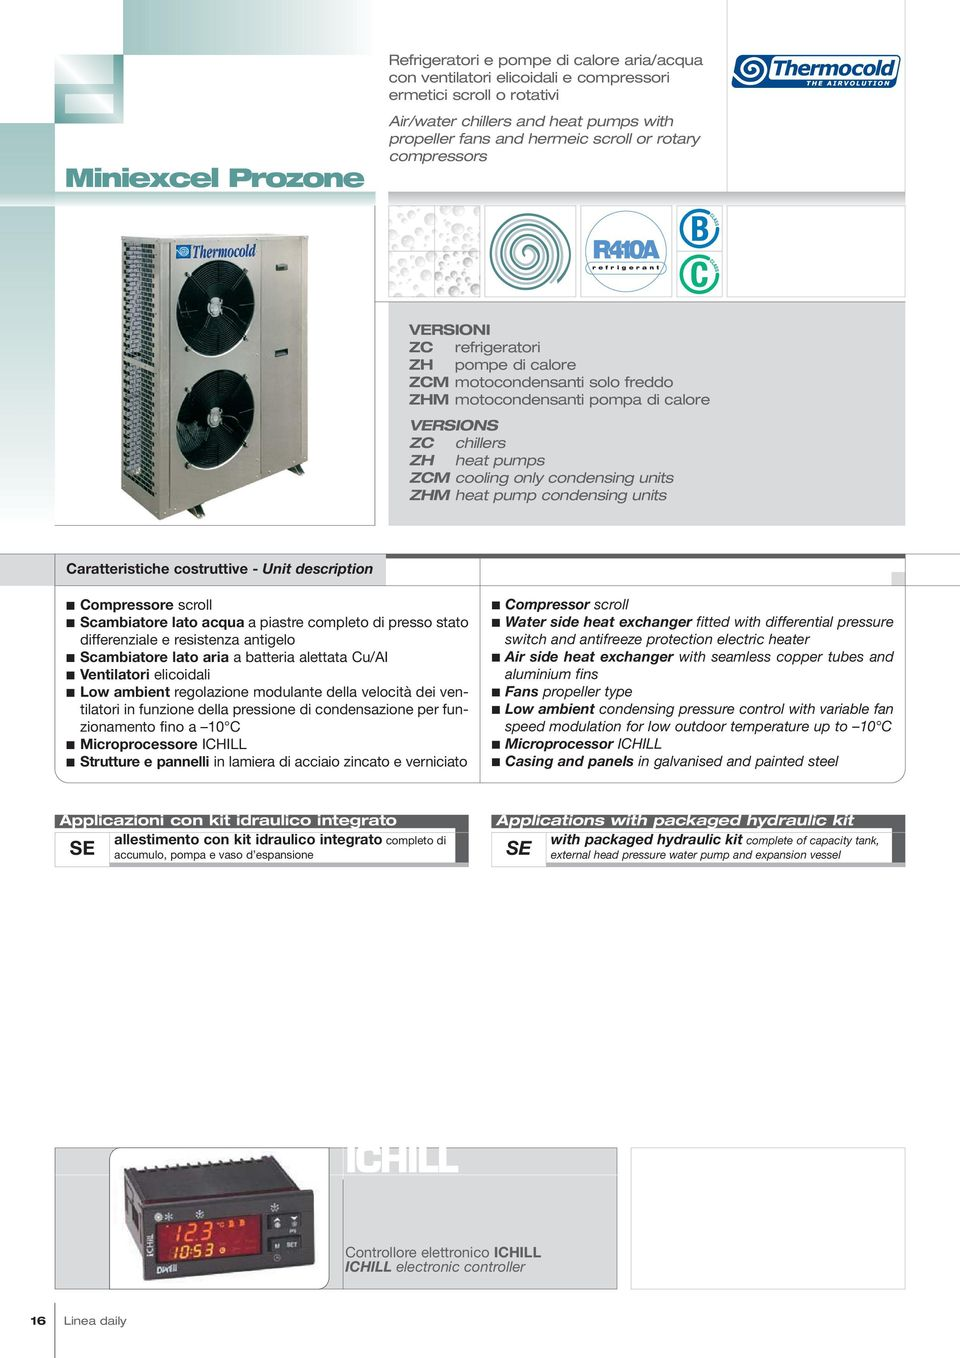 only condensing units ZH heat pump condensing units aratteristiche costruttive Unit description ompressore scroll Scambiatore lato acqua a piastre completo di presso stato differenziale e resistenza